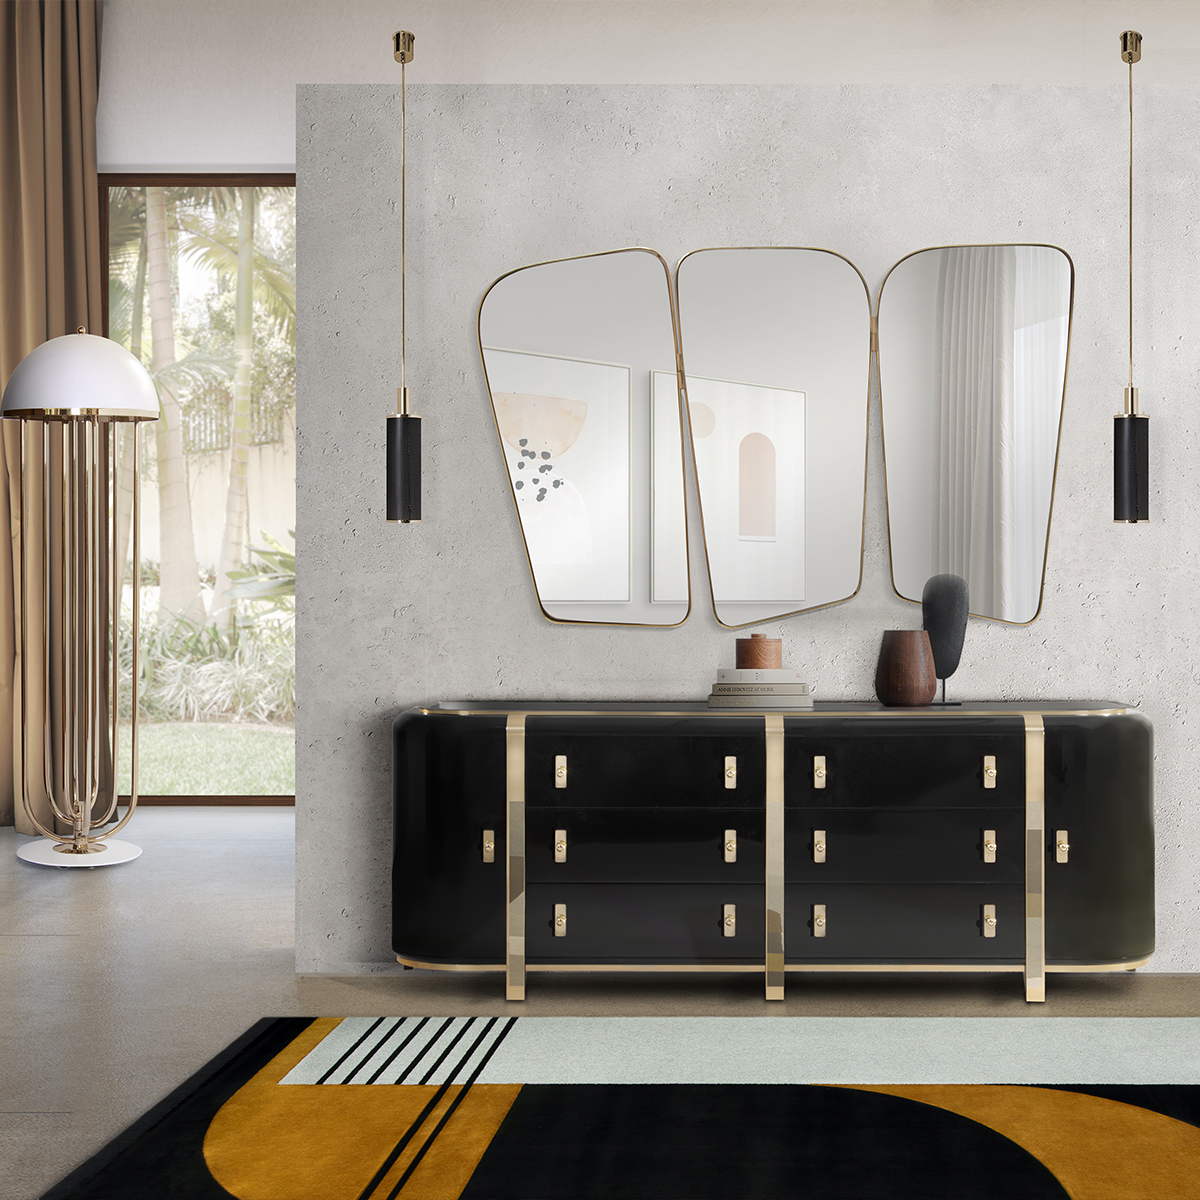 Top 25 Luxury Mirrors That Will Enhance Your Home_4 luxury mirrors Top 20 Luxury Mirrors That Will Enhance Your Home Top 25 Luxury Mirrors That Will Enhance Your Home 4